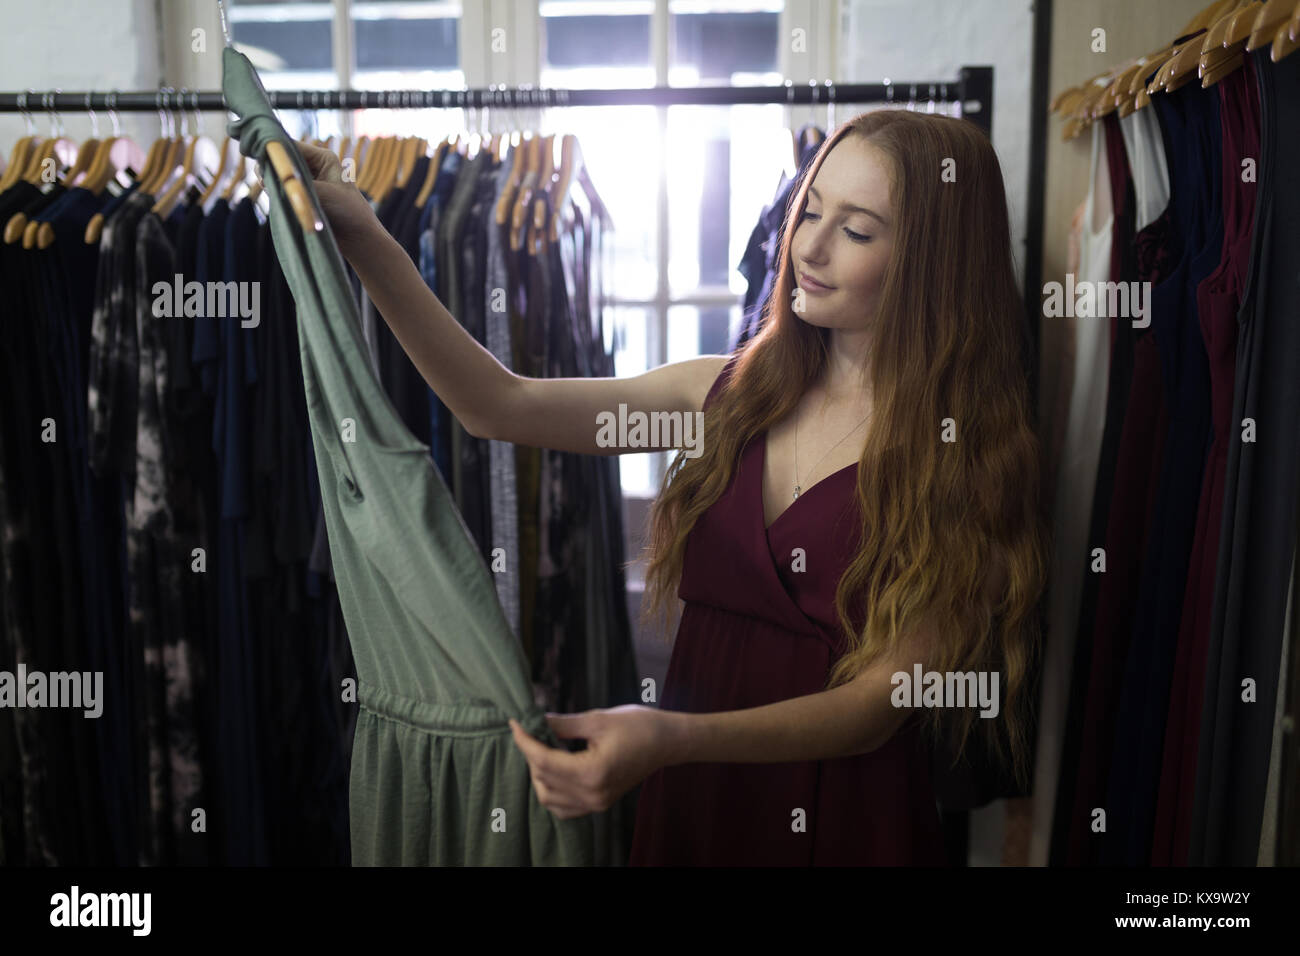 Young woman selecting a dress - Stock Image